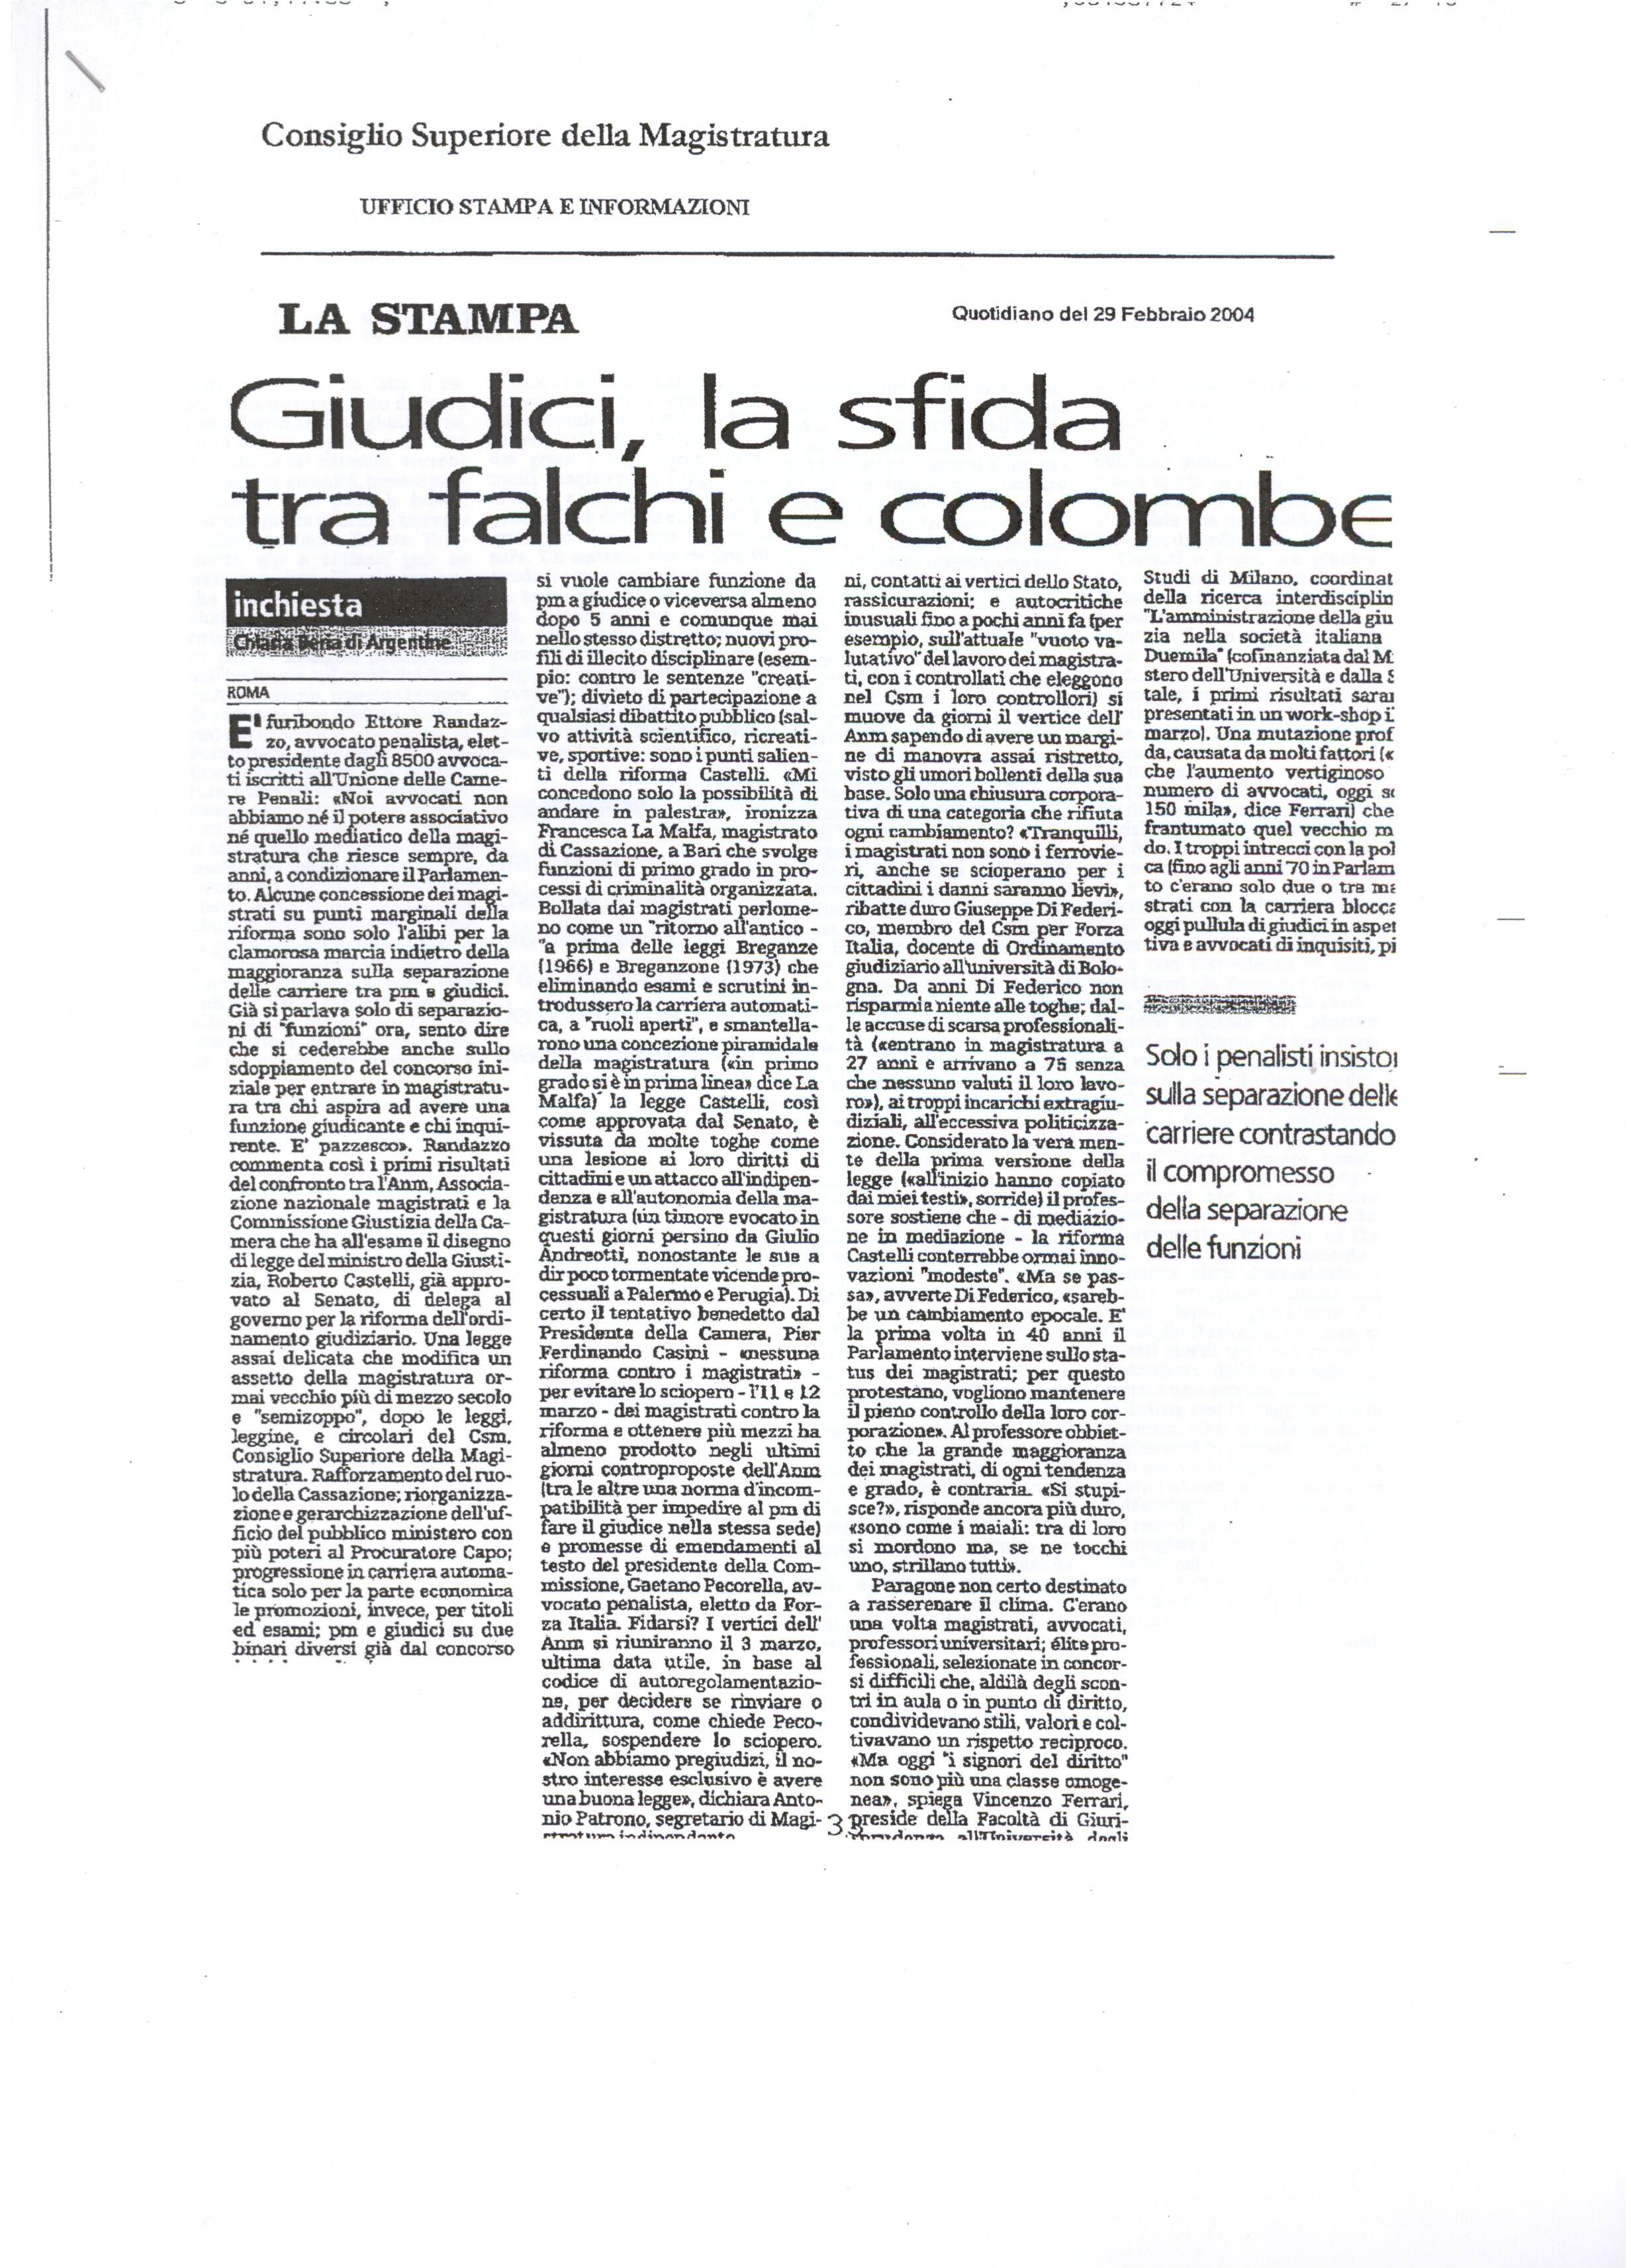 stampa_29feb041